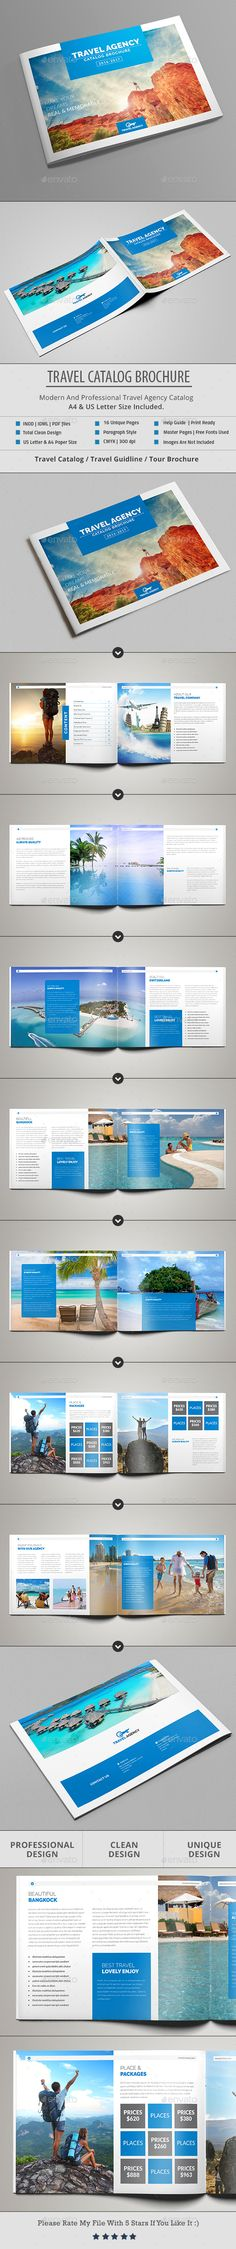 Travel Catalog / Brochure Template InDesign INDD - A4 & US Letter Size, 16 Unique Pages